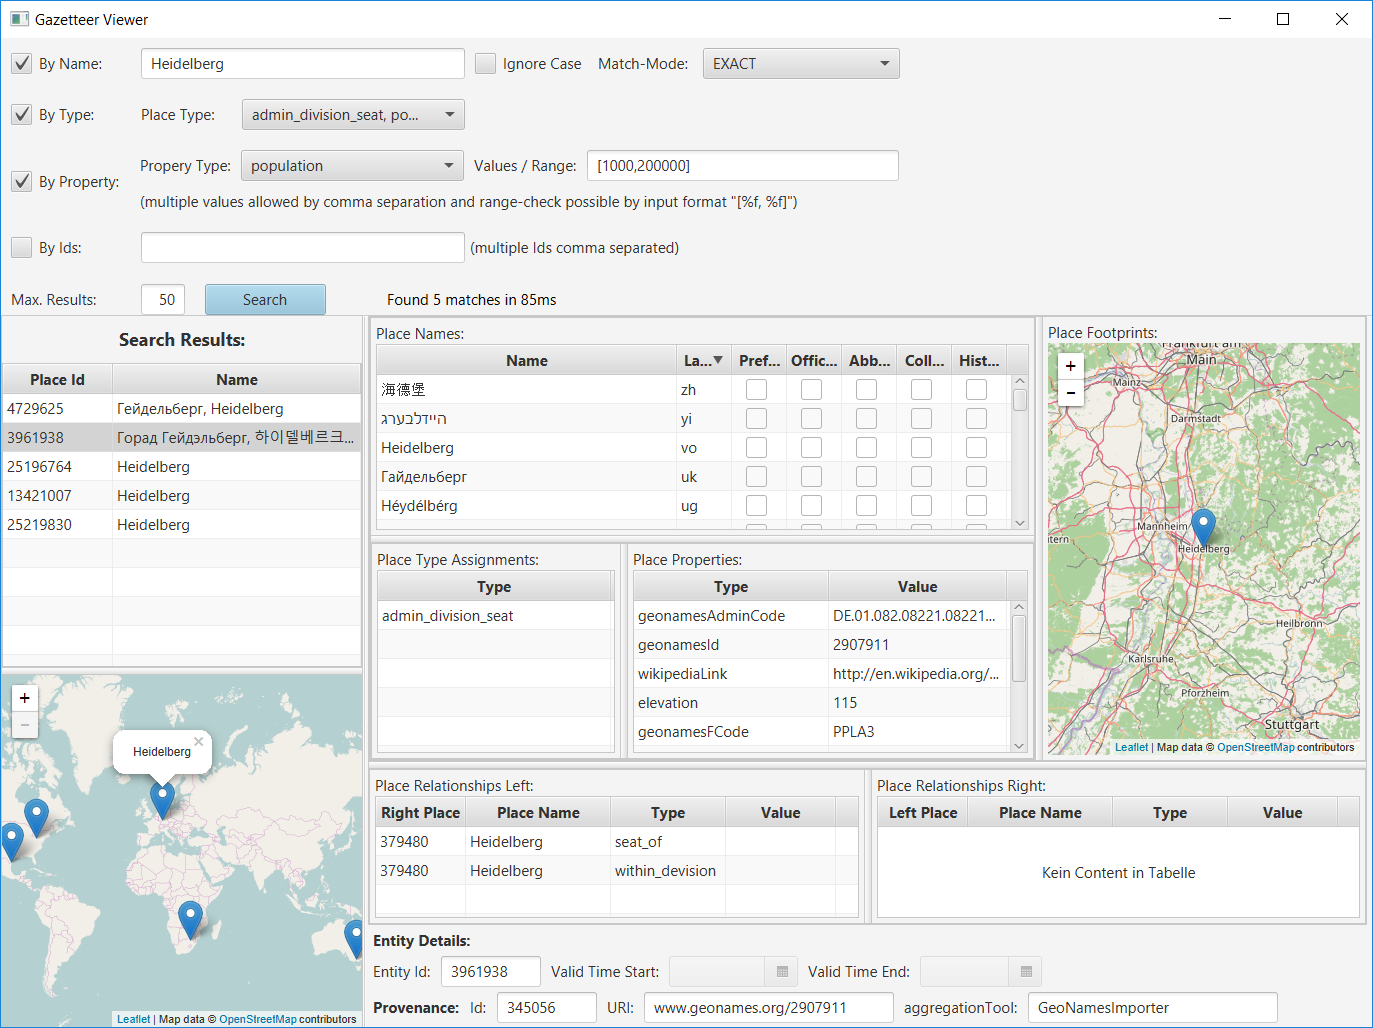 Demo Screenshot of the Gazetteer Viewer